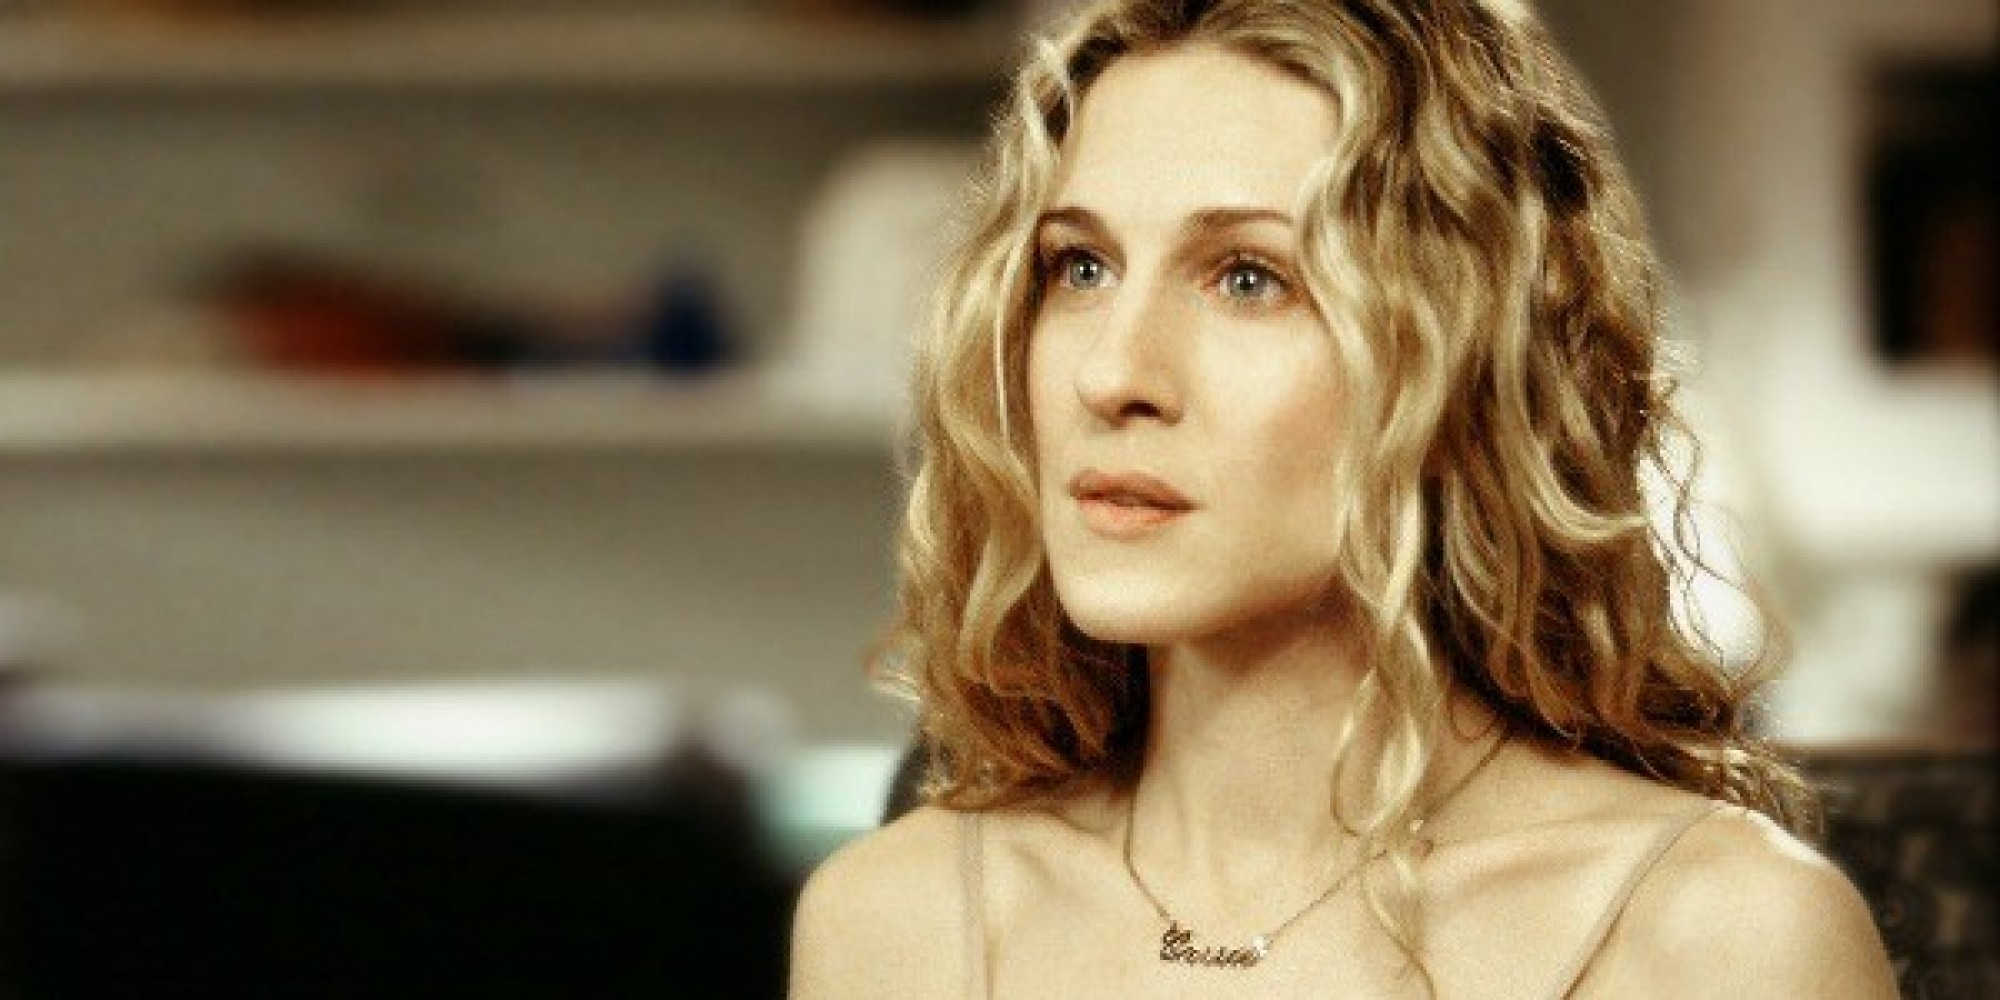 Carrie Bradshaw Carrie Bradshaw Apartment Sex And The City Writers New York Home